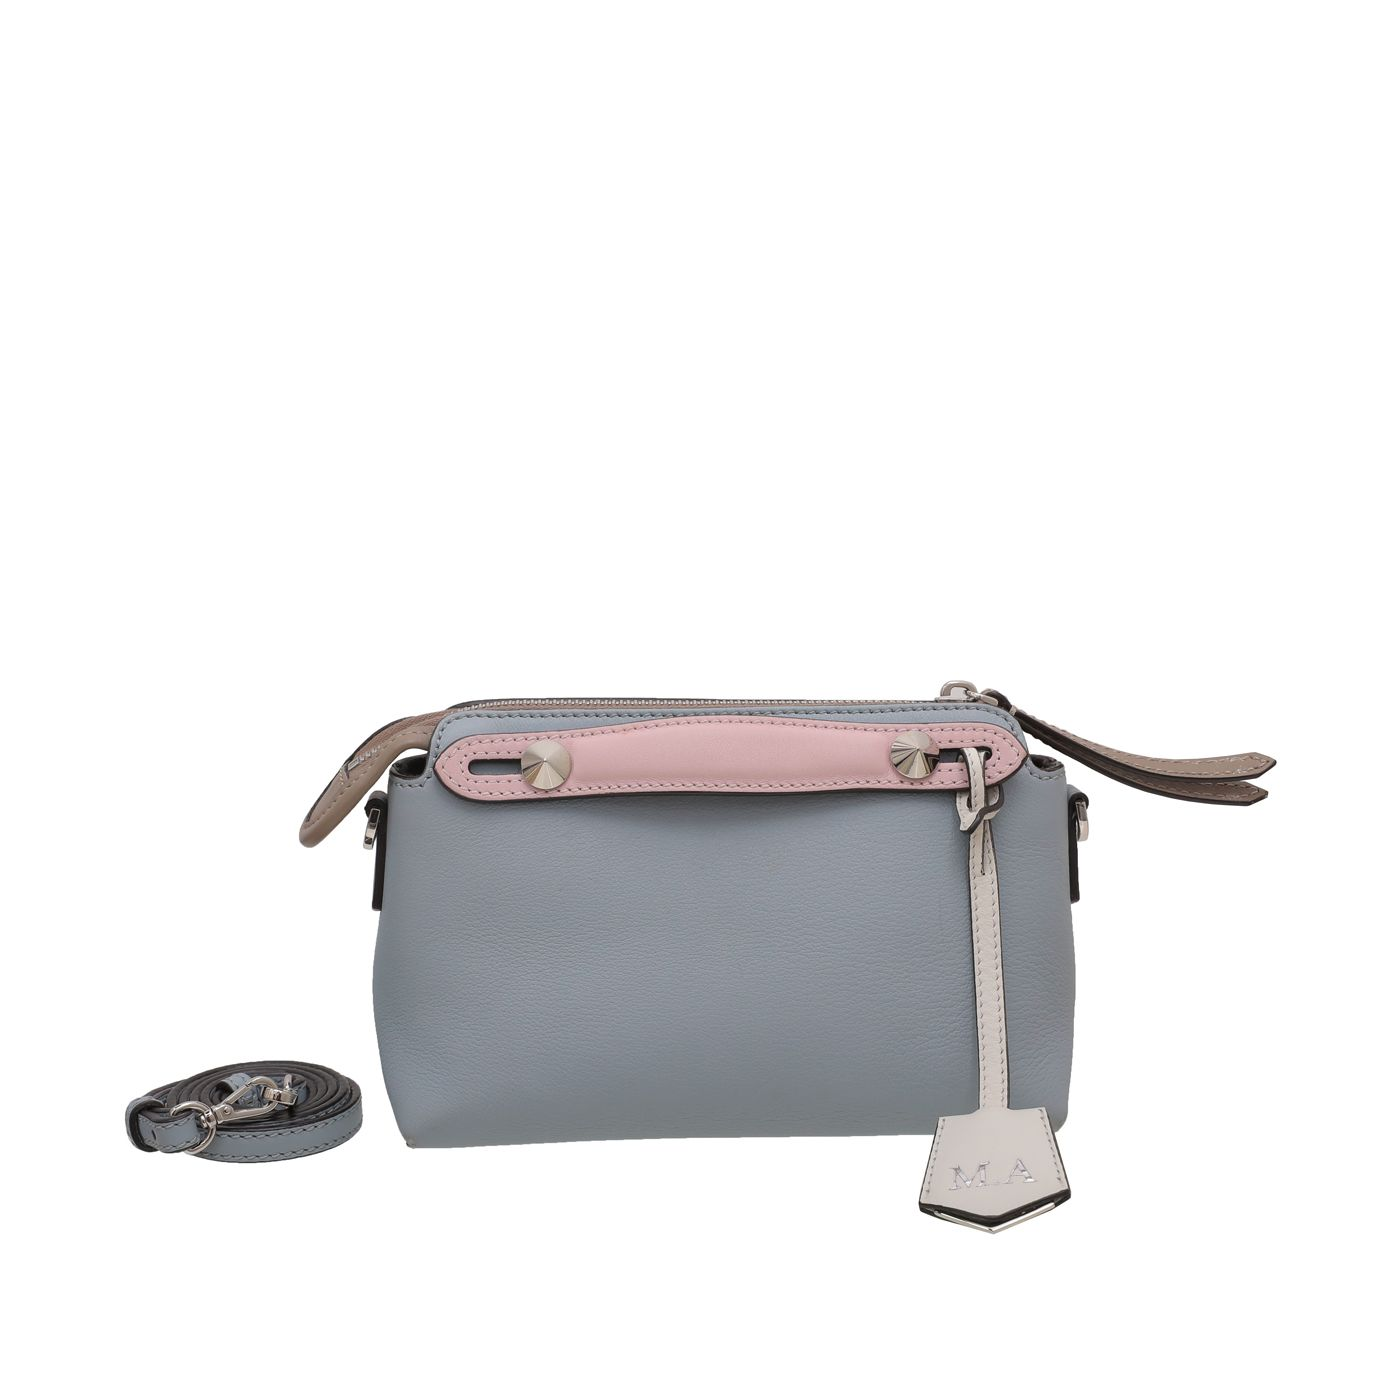 Fendi Tricolor By The Way Bag